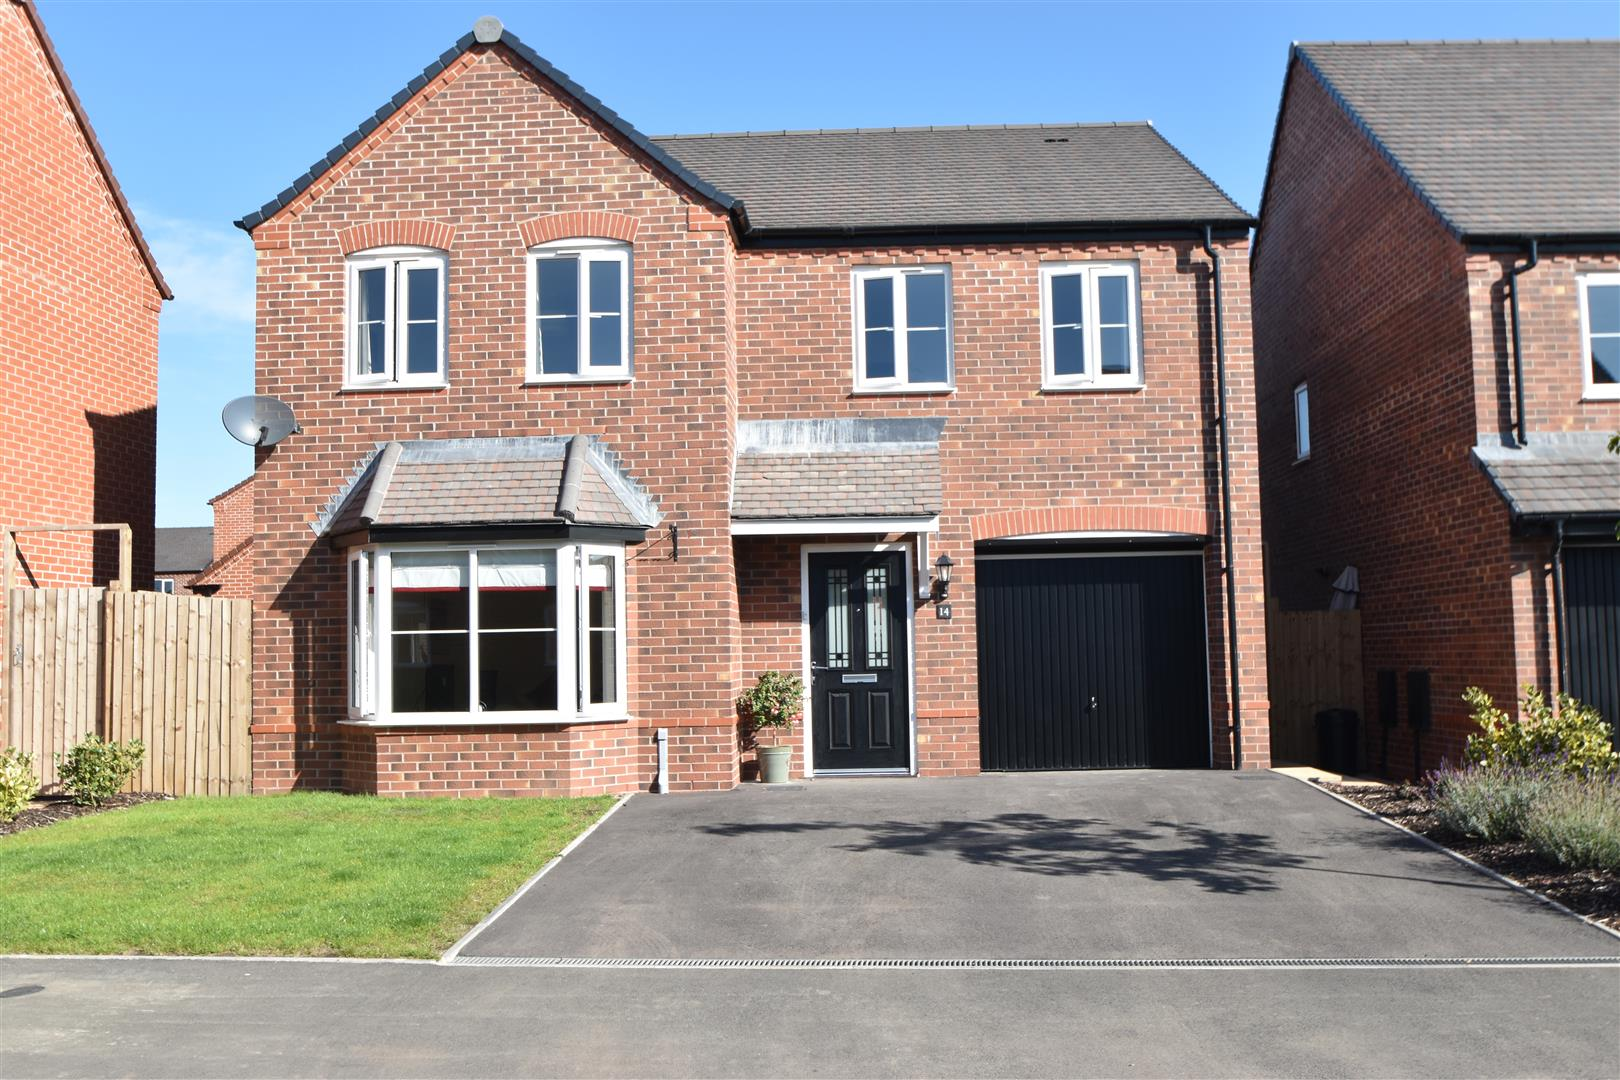 4 Bedrooms Detached House for sale in Minerva Crescent, Kempsey, Worcester